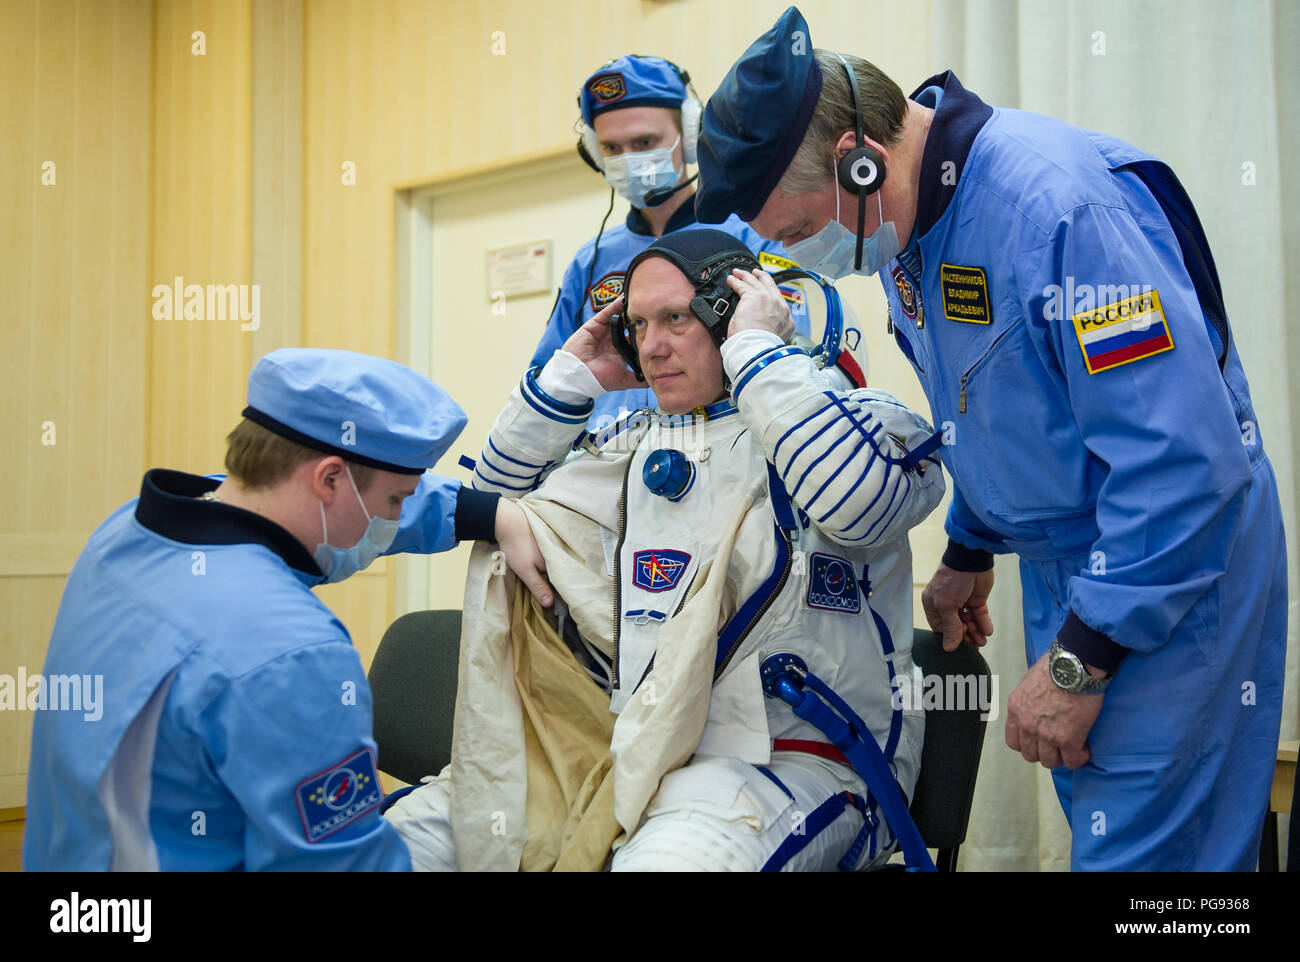 Expedition 55 Soyuz Commander Oleg Artemyev of Roscosmos is helped into his Russian Sokol suit as he and fellow crewmates, flight engineers Ricky Arnold and Drew Feustel of NASA prepare for their Soyuz launch to the International Space Station, Wednesday, March 21, 2018 in Baikonur, Kazakhstan. Artemyev, Arnold, and Feustel launched aboard the Soyuz MS-08 spacecraft at 1:44 p.m. Eastern time (11:44 p.m. Baikonur time) on March 21 to begin their journey to the International Space Station. - Stock Image